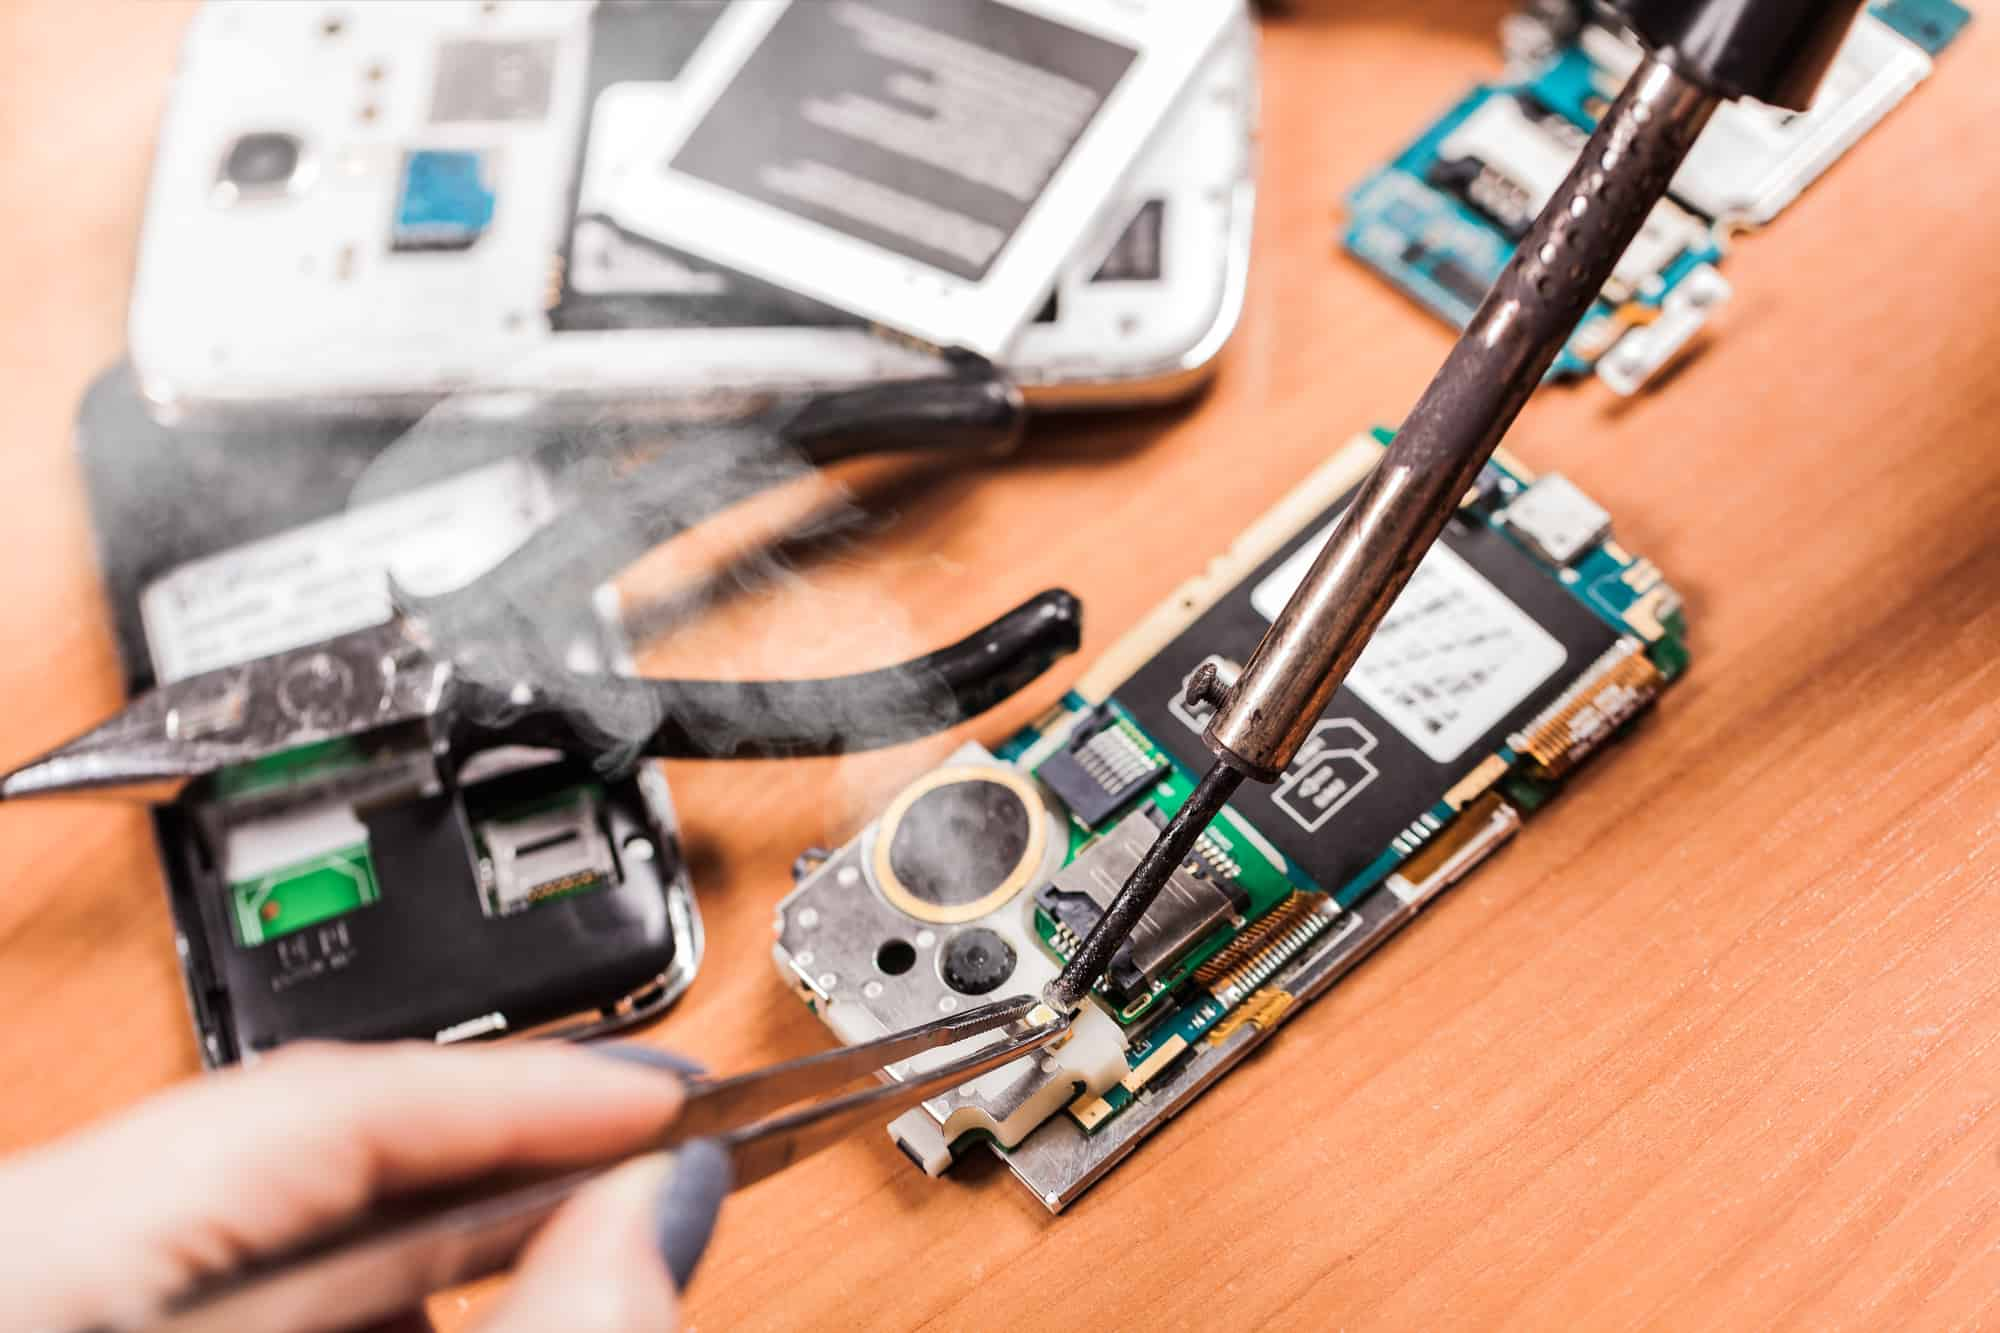 repairing an iphone, phone in pieces